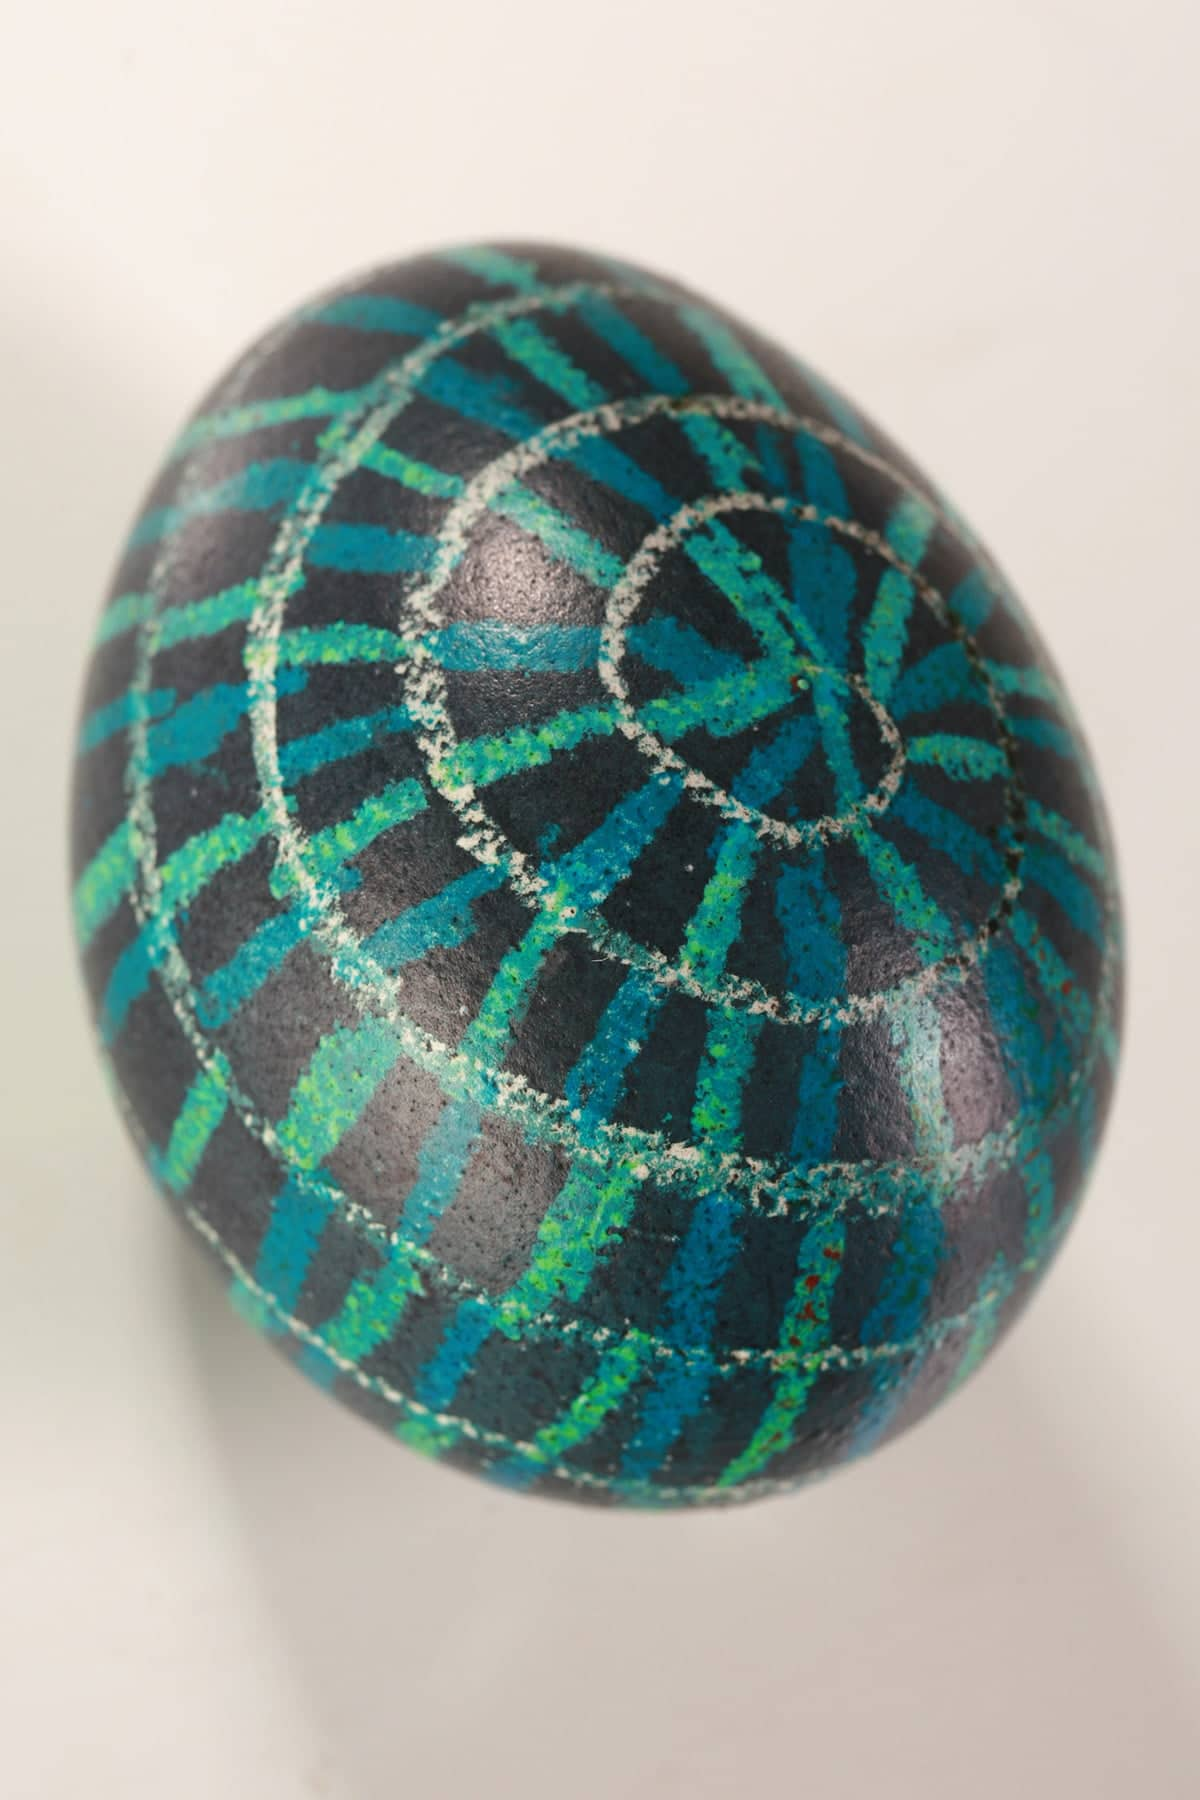 A shiny, dark blue easter egg with a white, blue, and green spiralladder design dyed into it with wax resist technique.